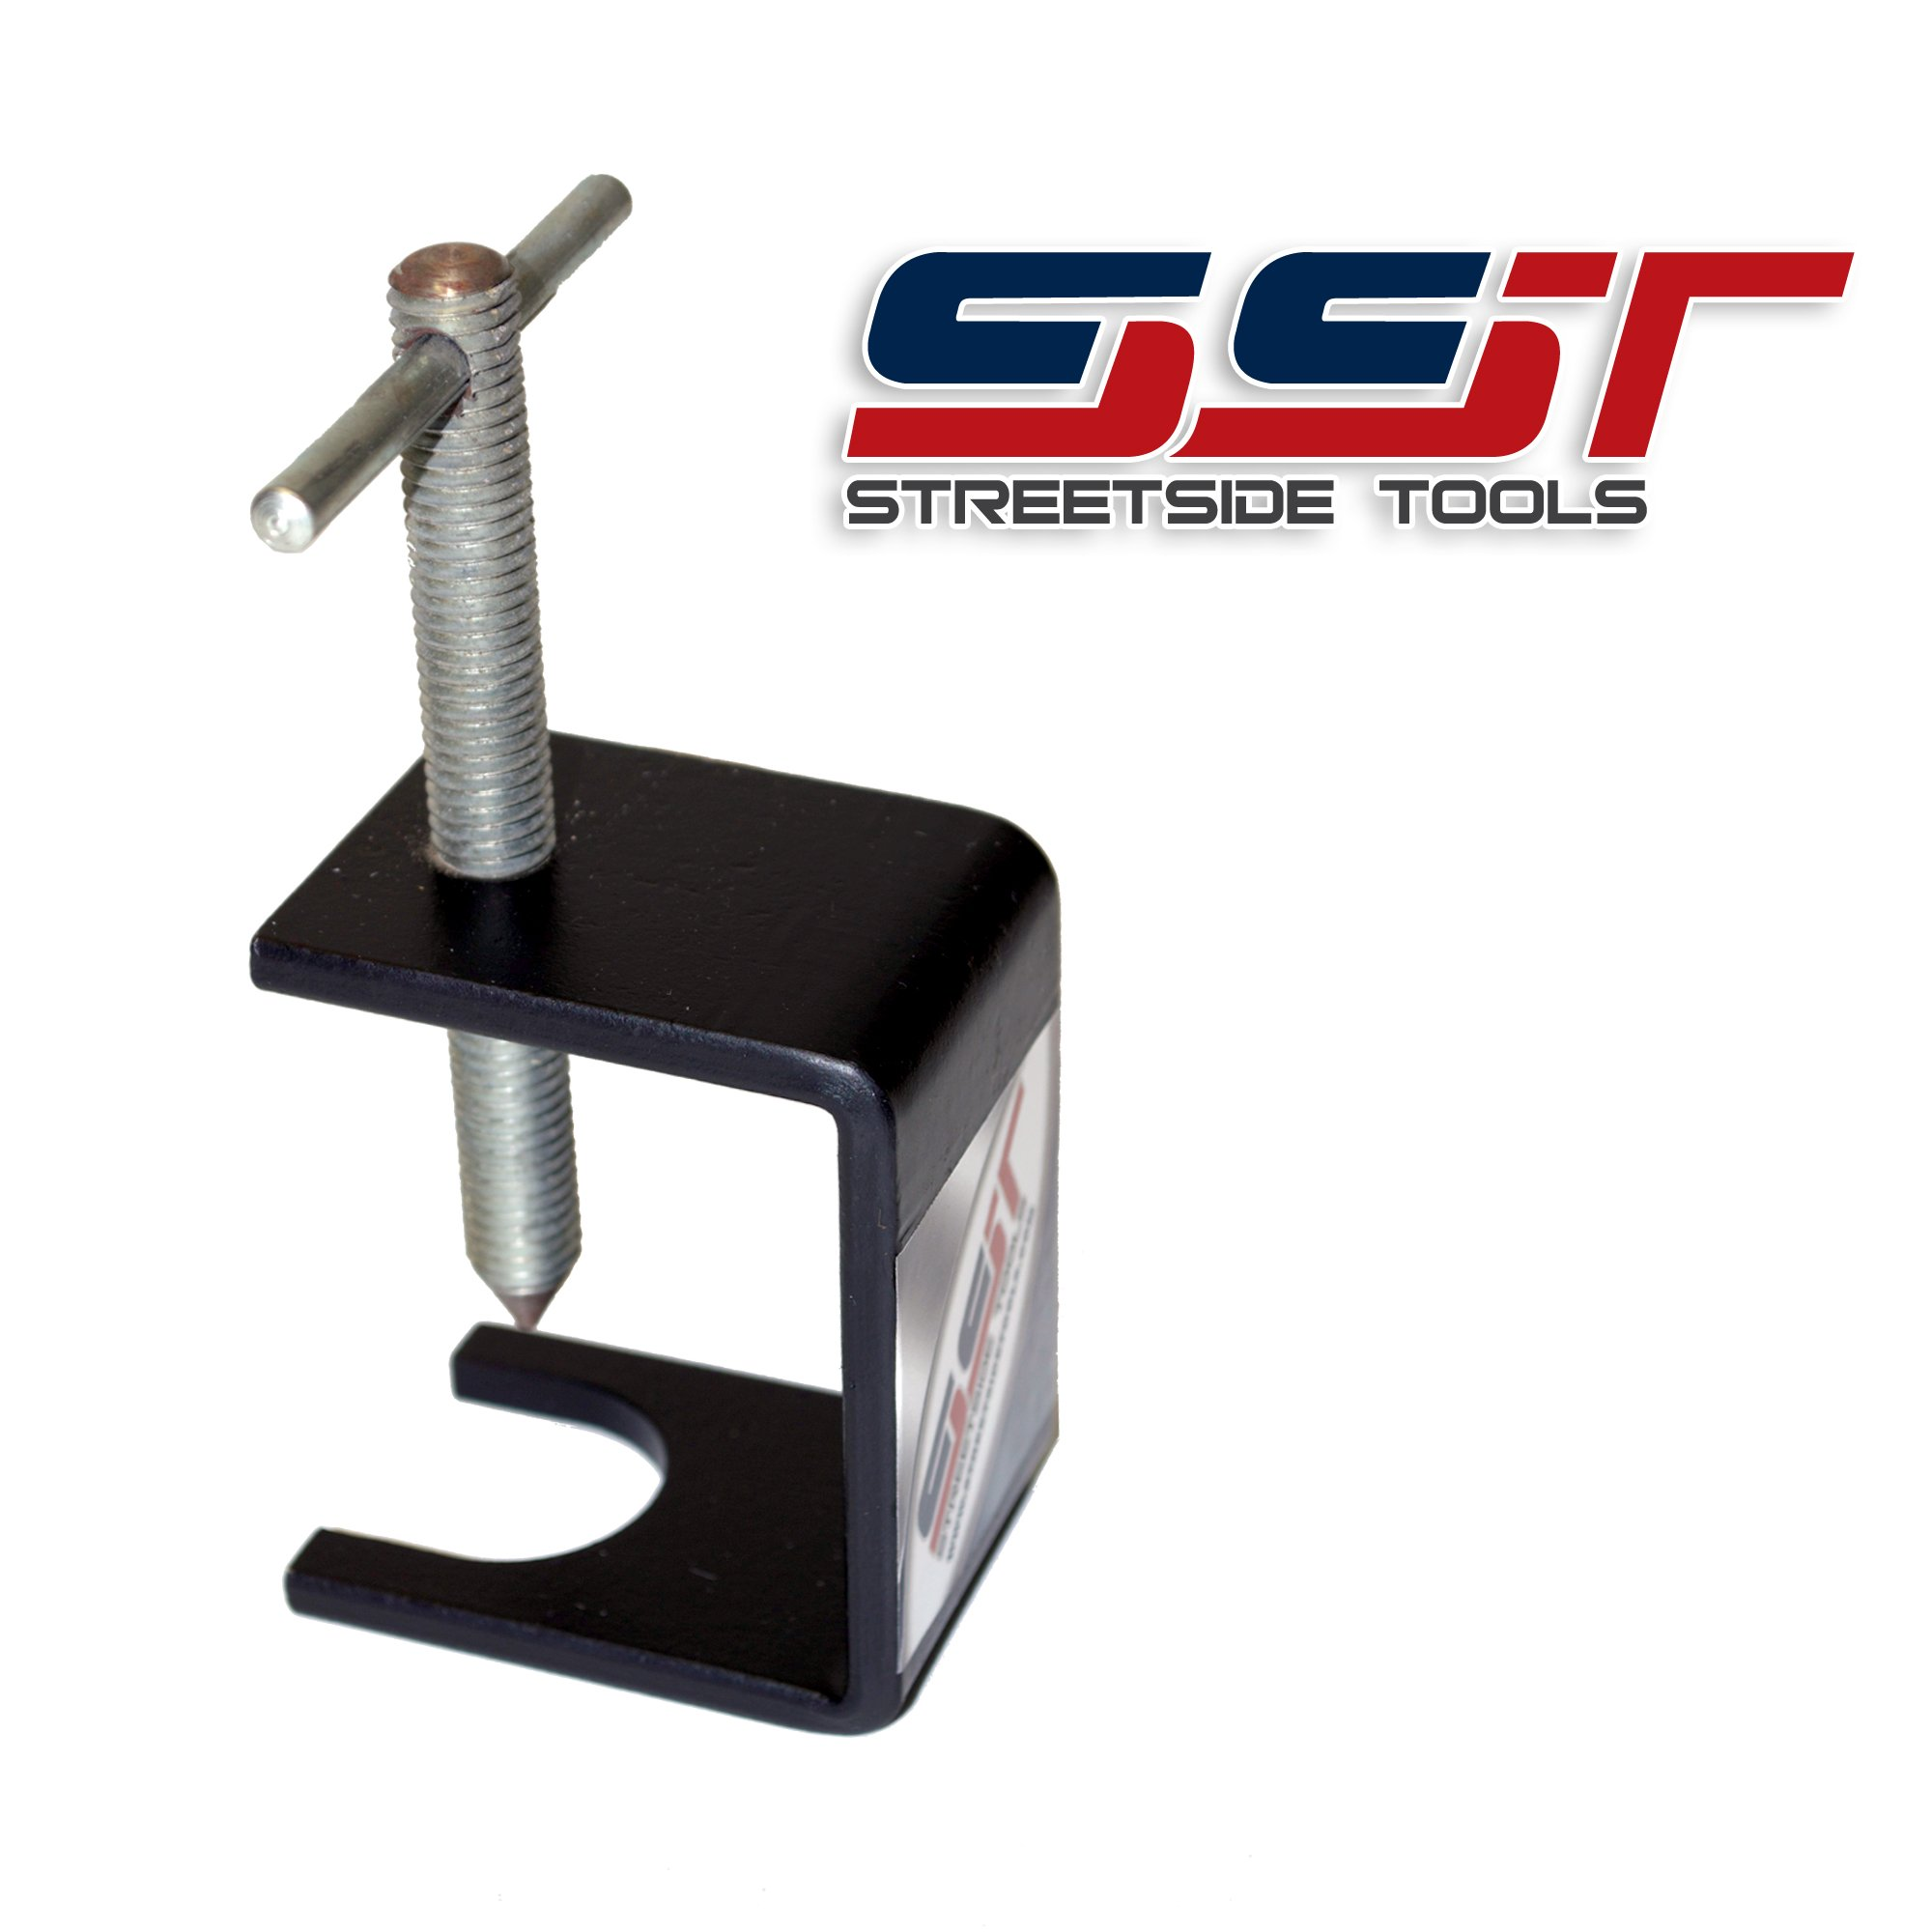 Streetside Tools SST-1071-A - GM - Direct Clutch Accumulator Piston Remover/Installer Transmission Tool